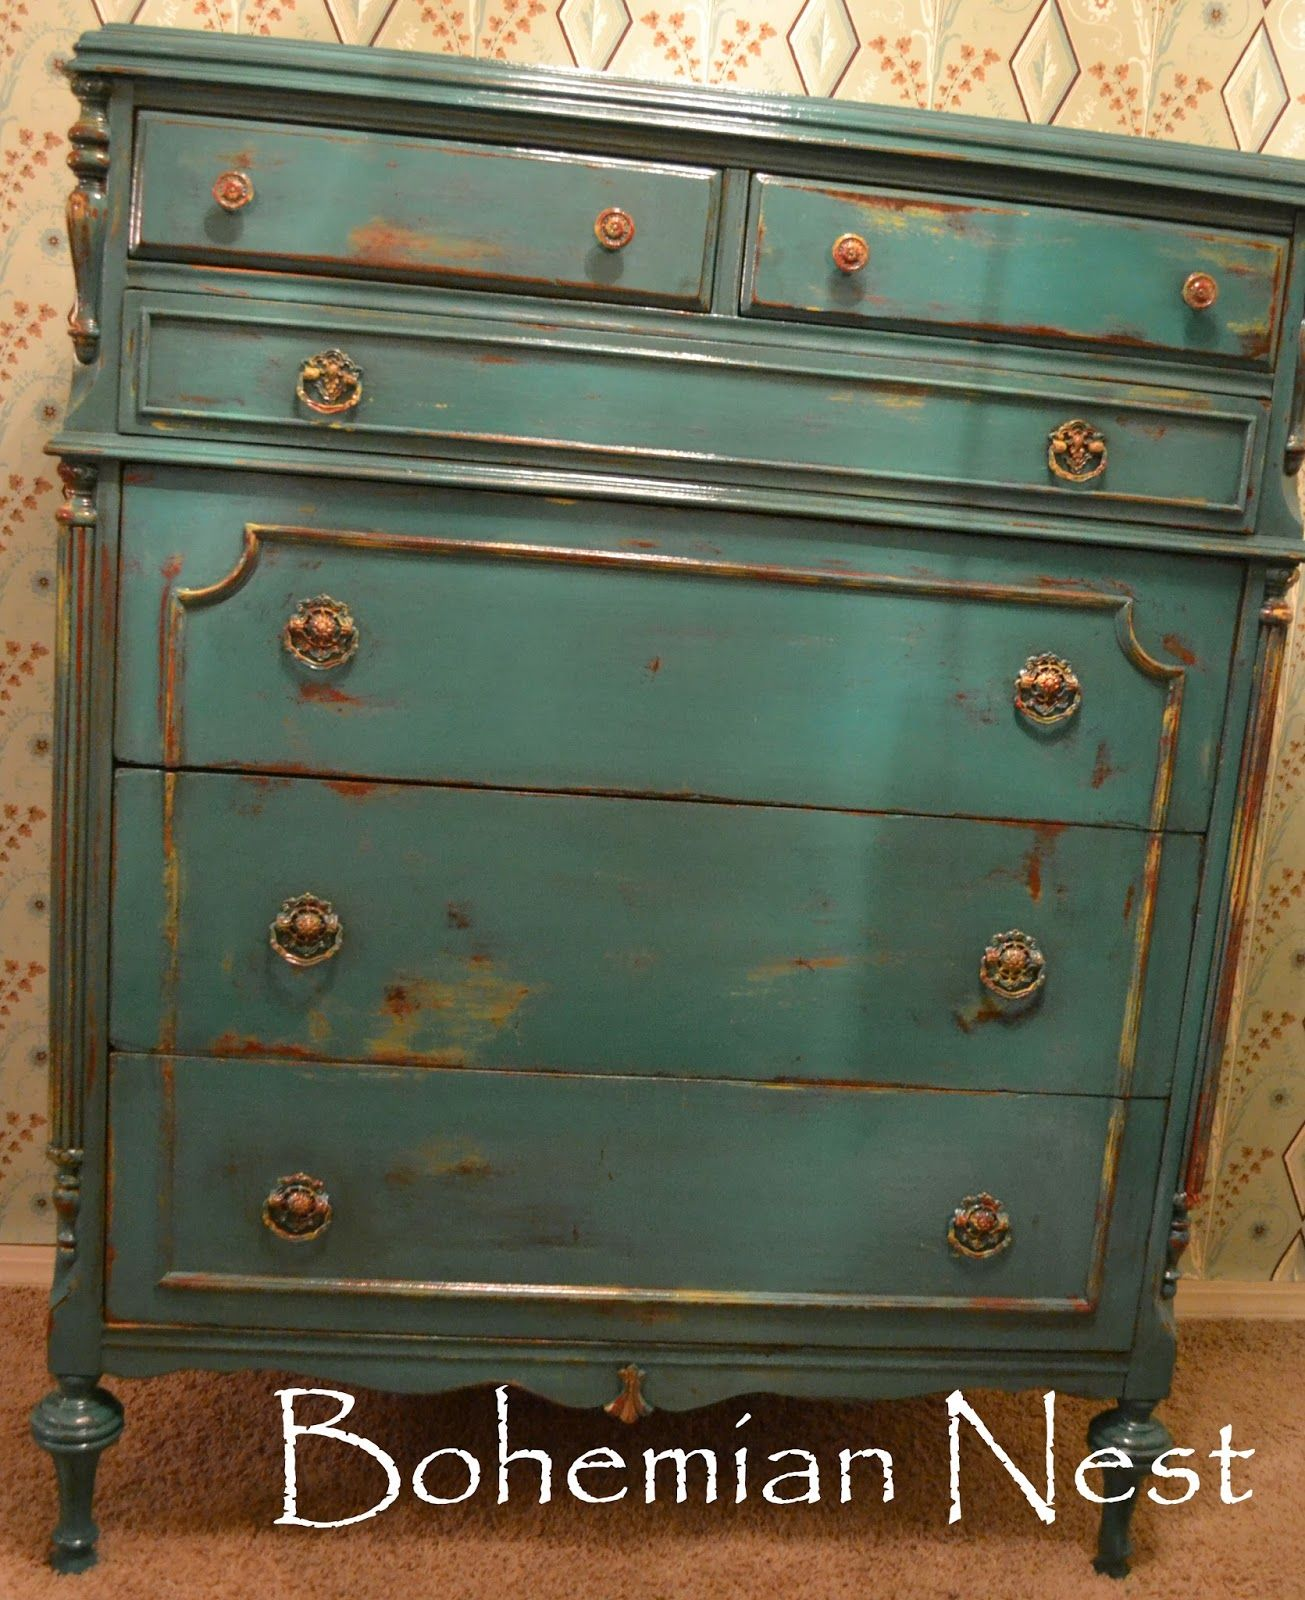 Uncategorized Turquoise Shabby Chic Furniture turquoise chest www facebook comthebohemianmoon vintage and comthebohemianmoon